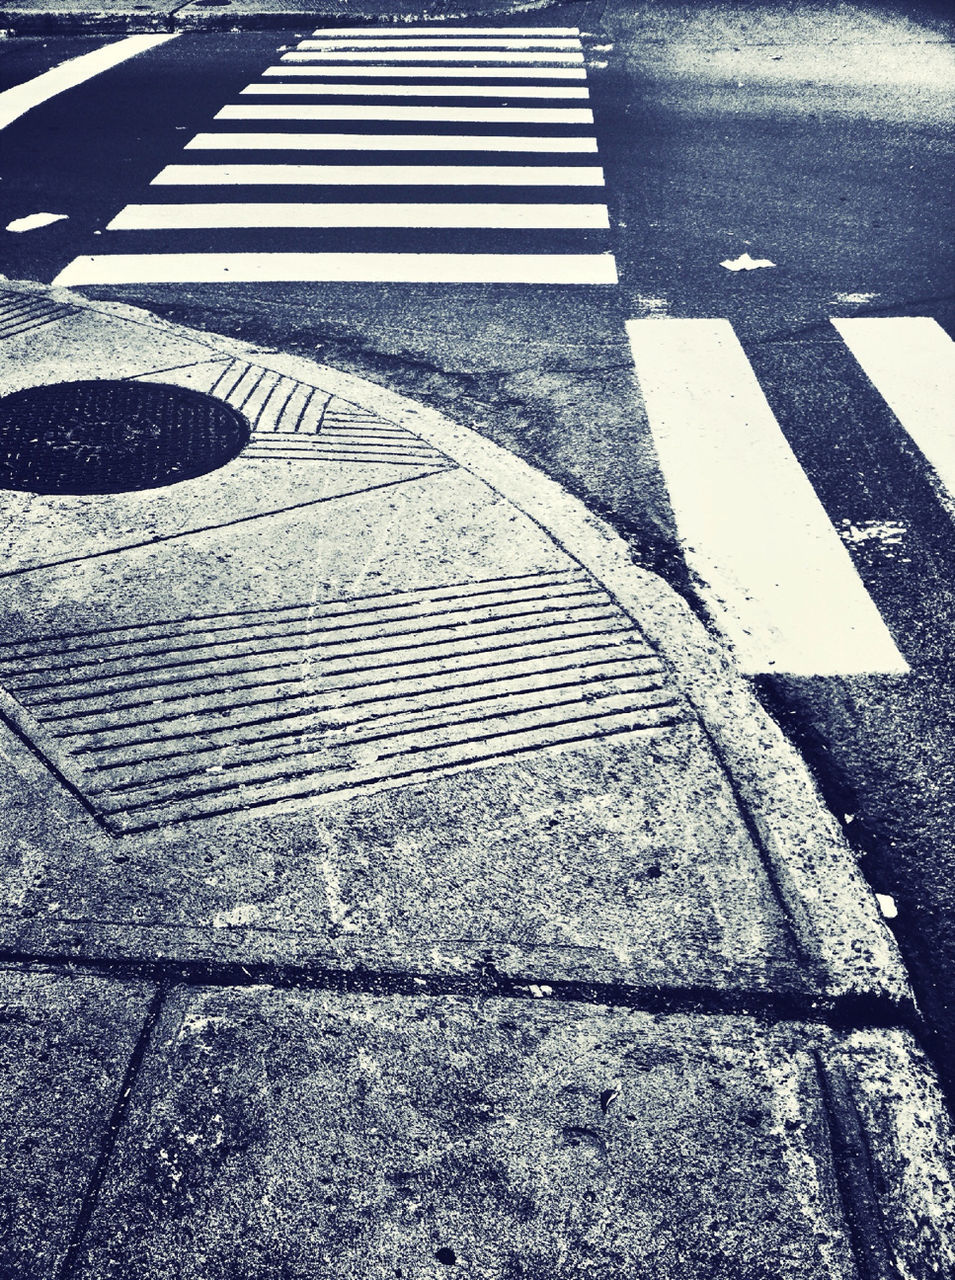 road marking, zebra crossing, road, street, asphalt, striped, transportation, white line, high angle view, outdoors, safety, day, guidance, no people, road sign, marking, zebra, city